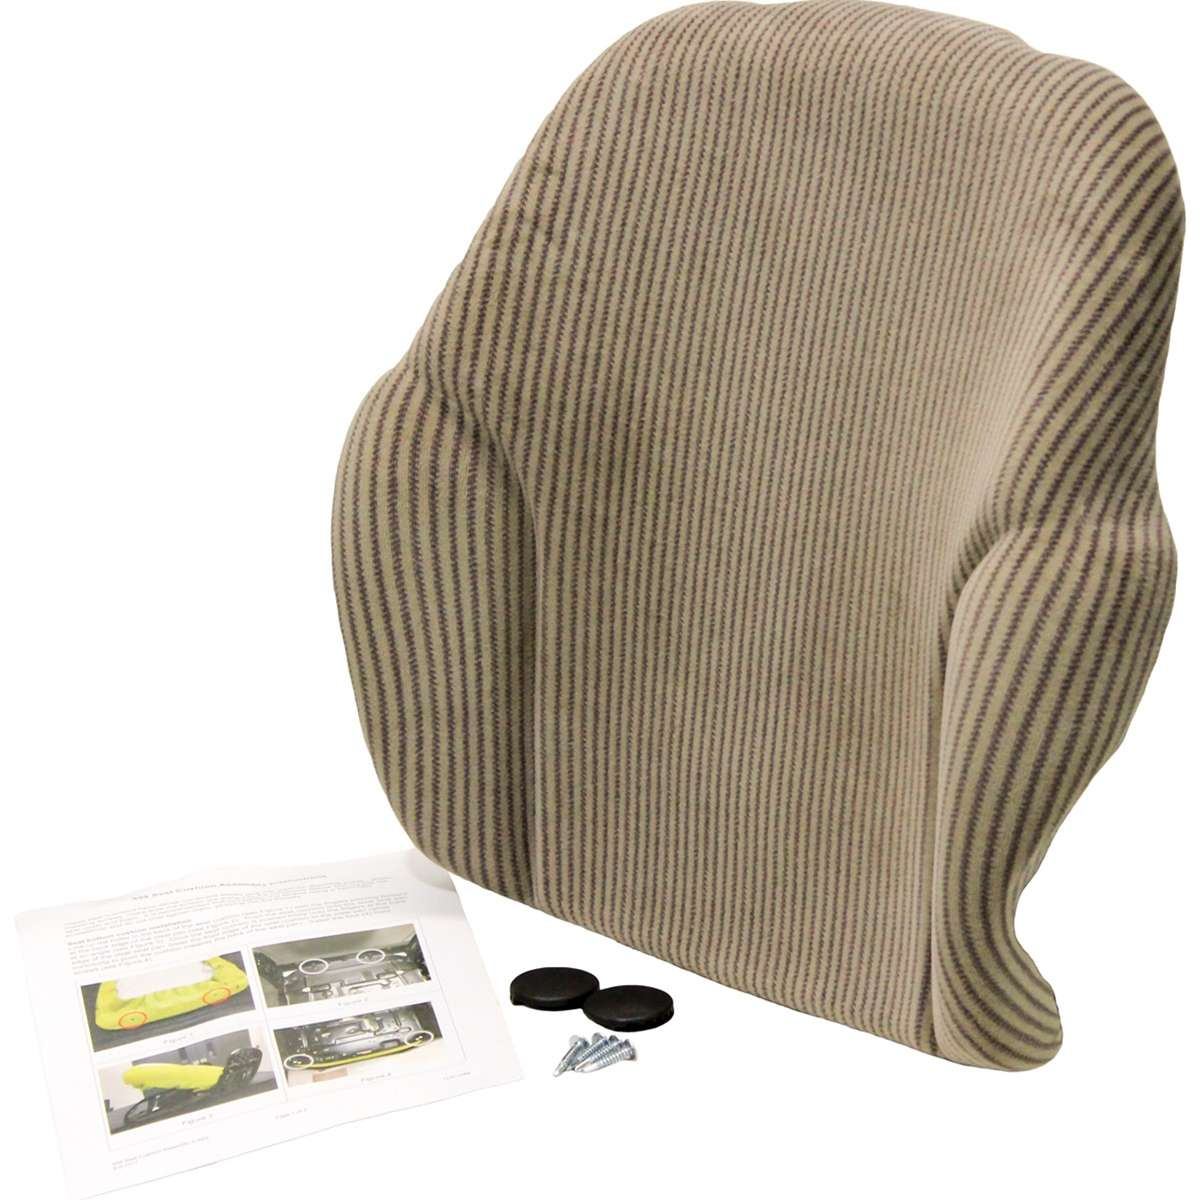 John Deere Mower & Utility Tractor Backrest Cushions